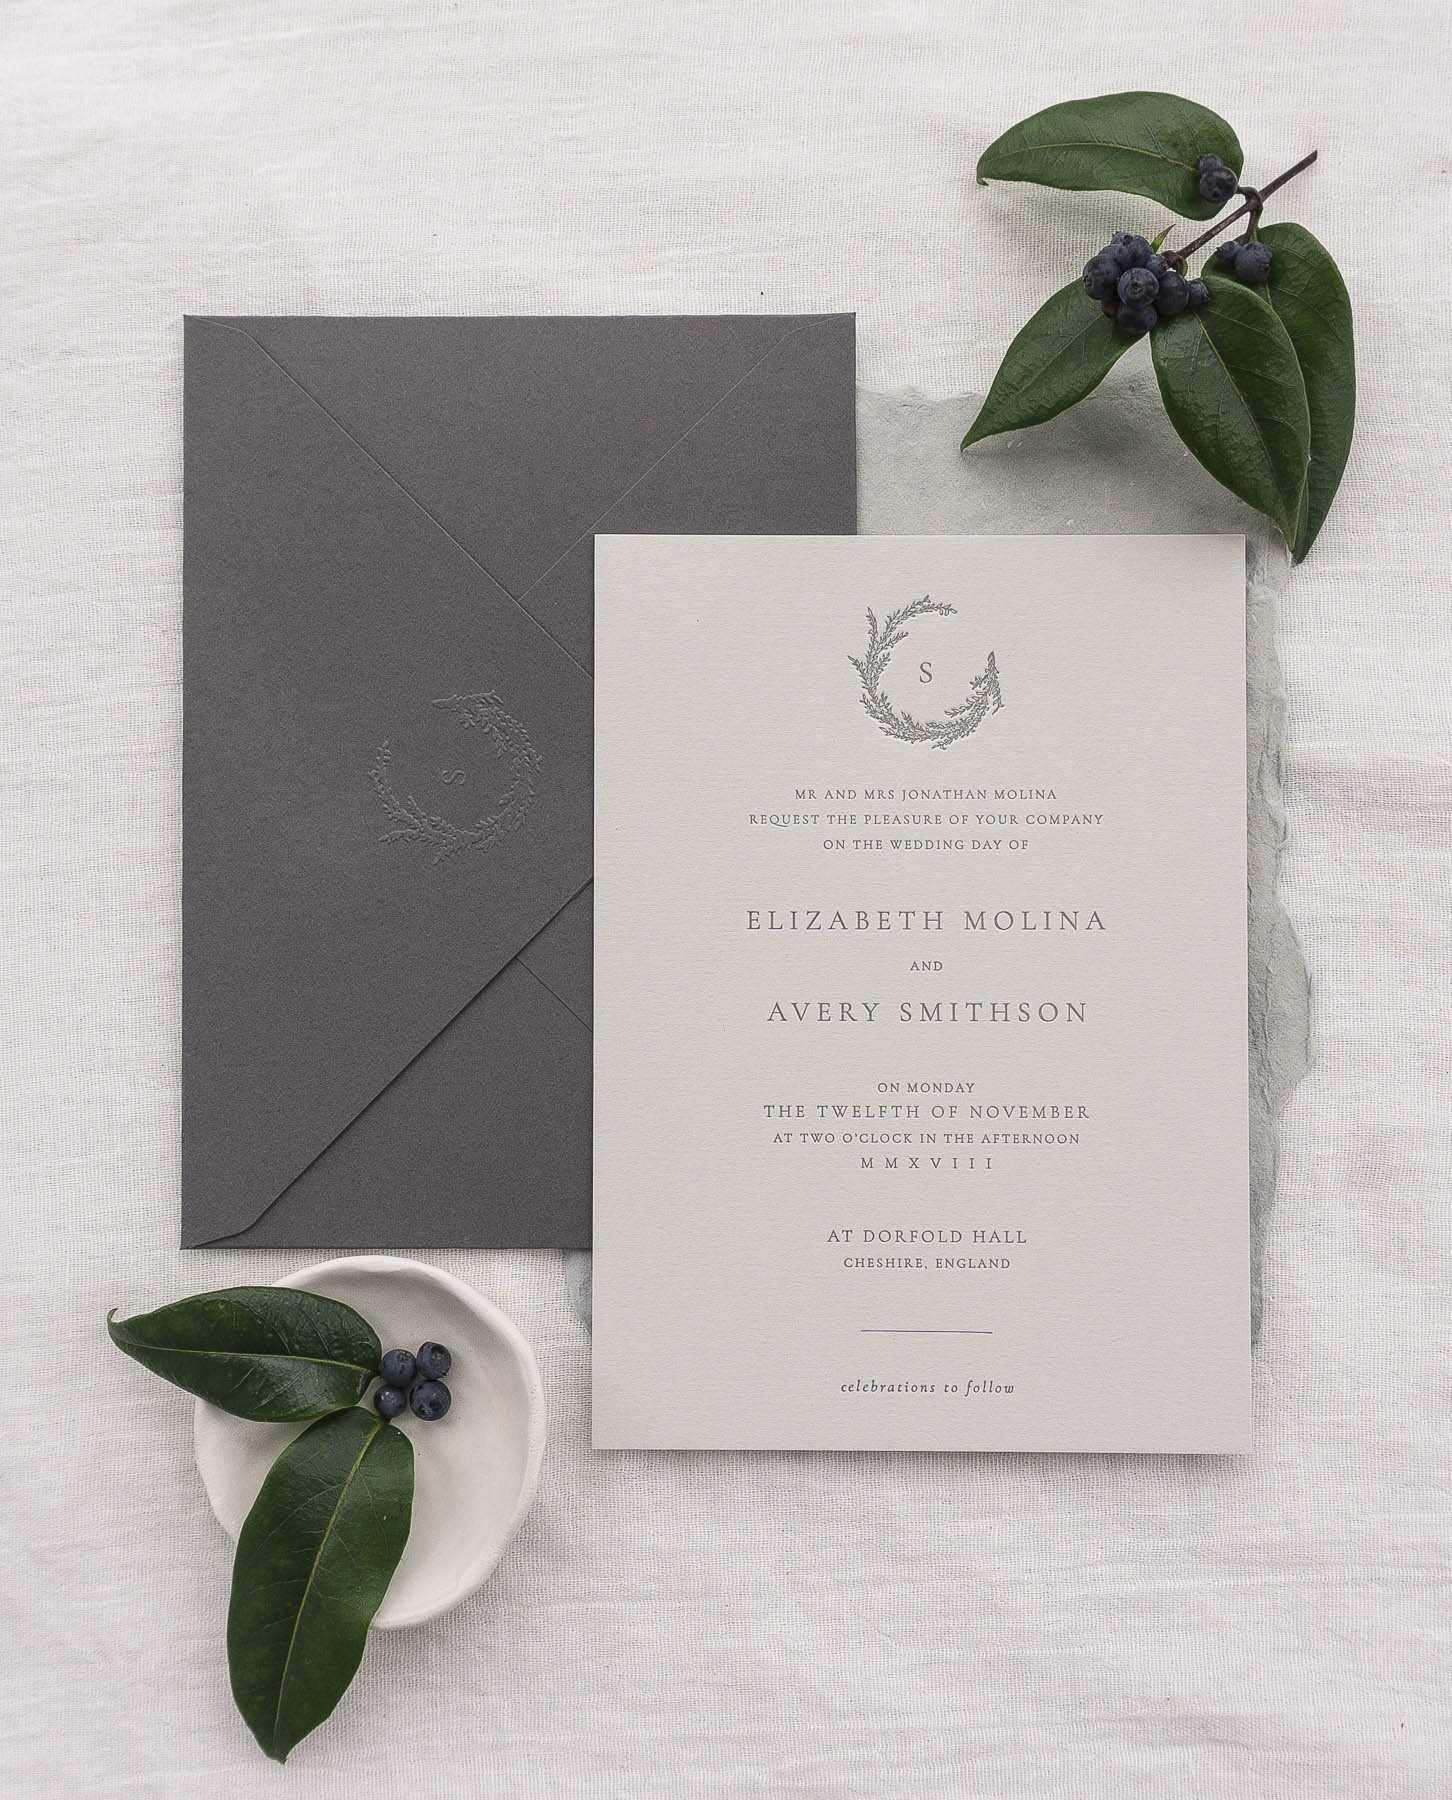 emboss seal monogram wreath letterpress deboss invitation typography simple modern classic